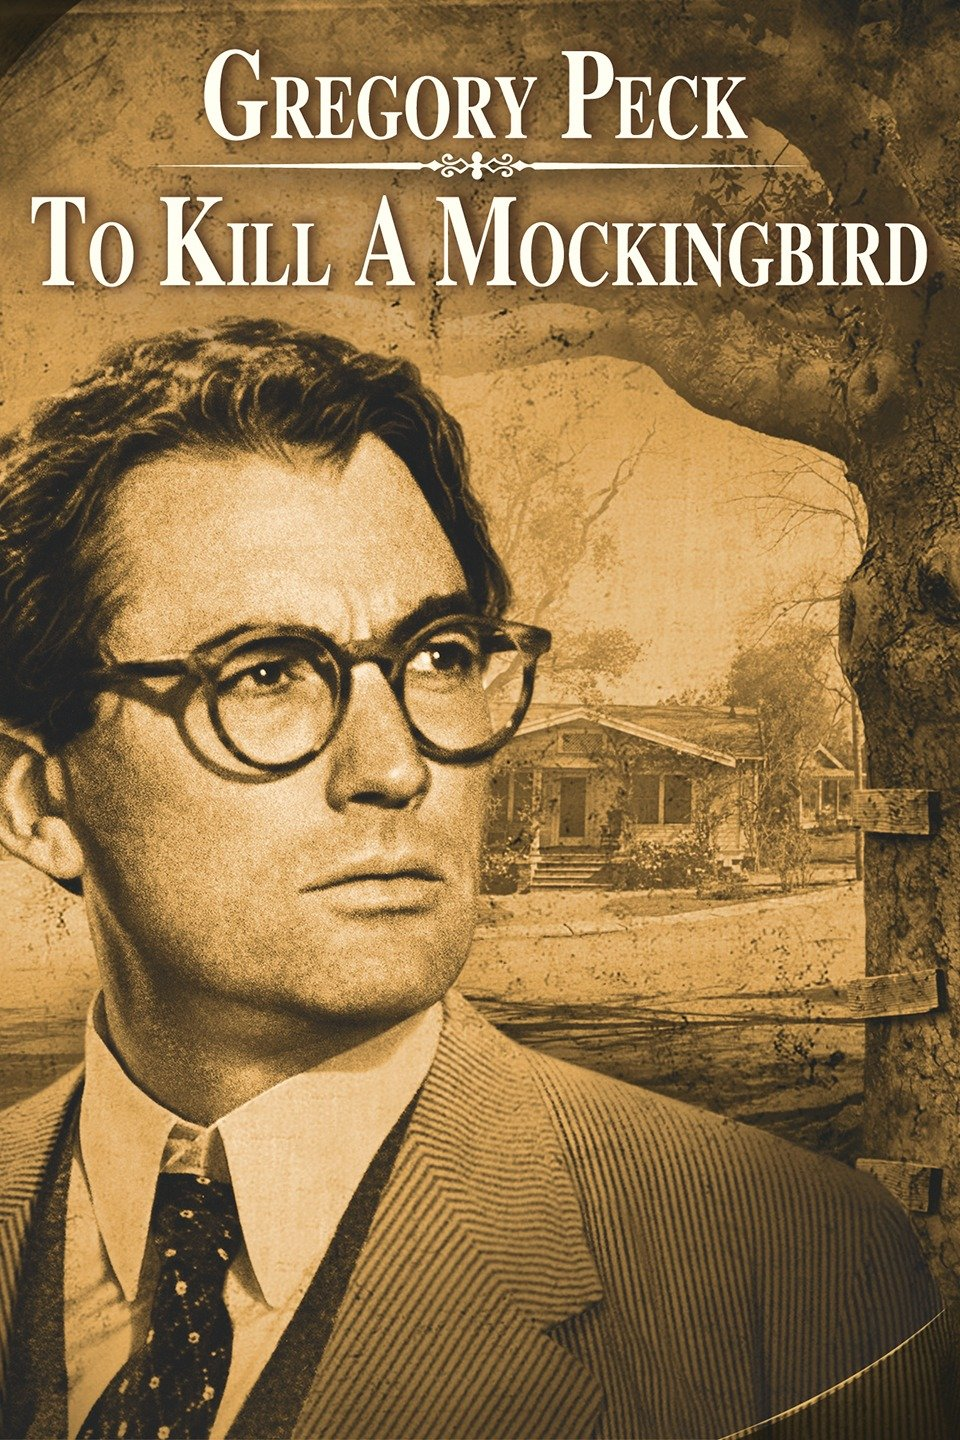 To Kill a Mockingbird (1961)